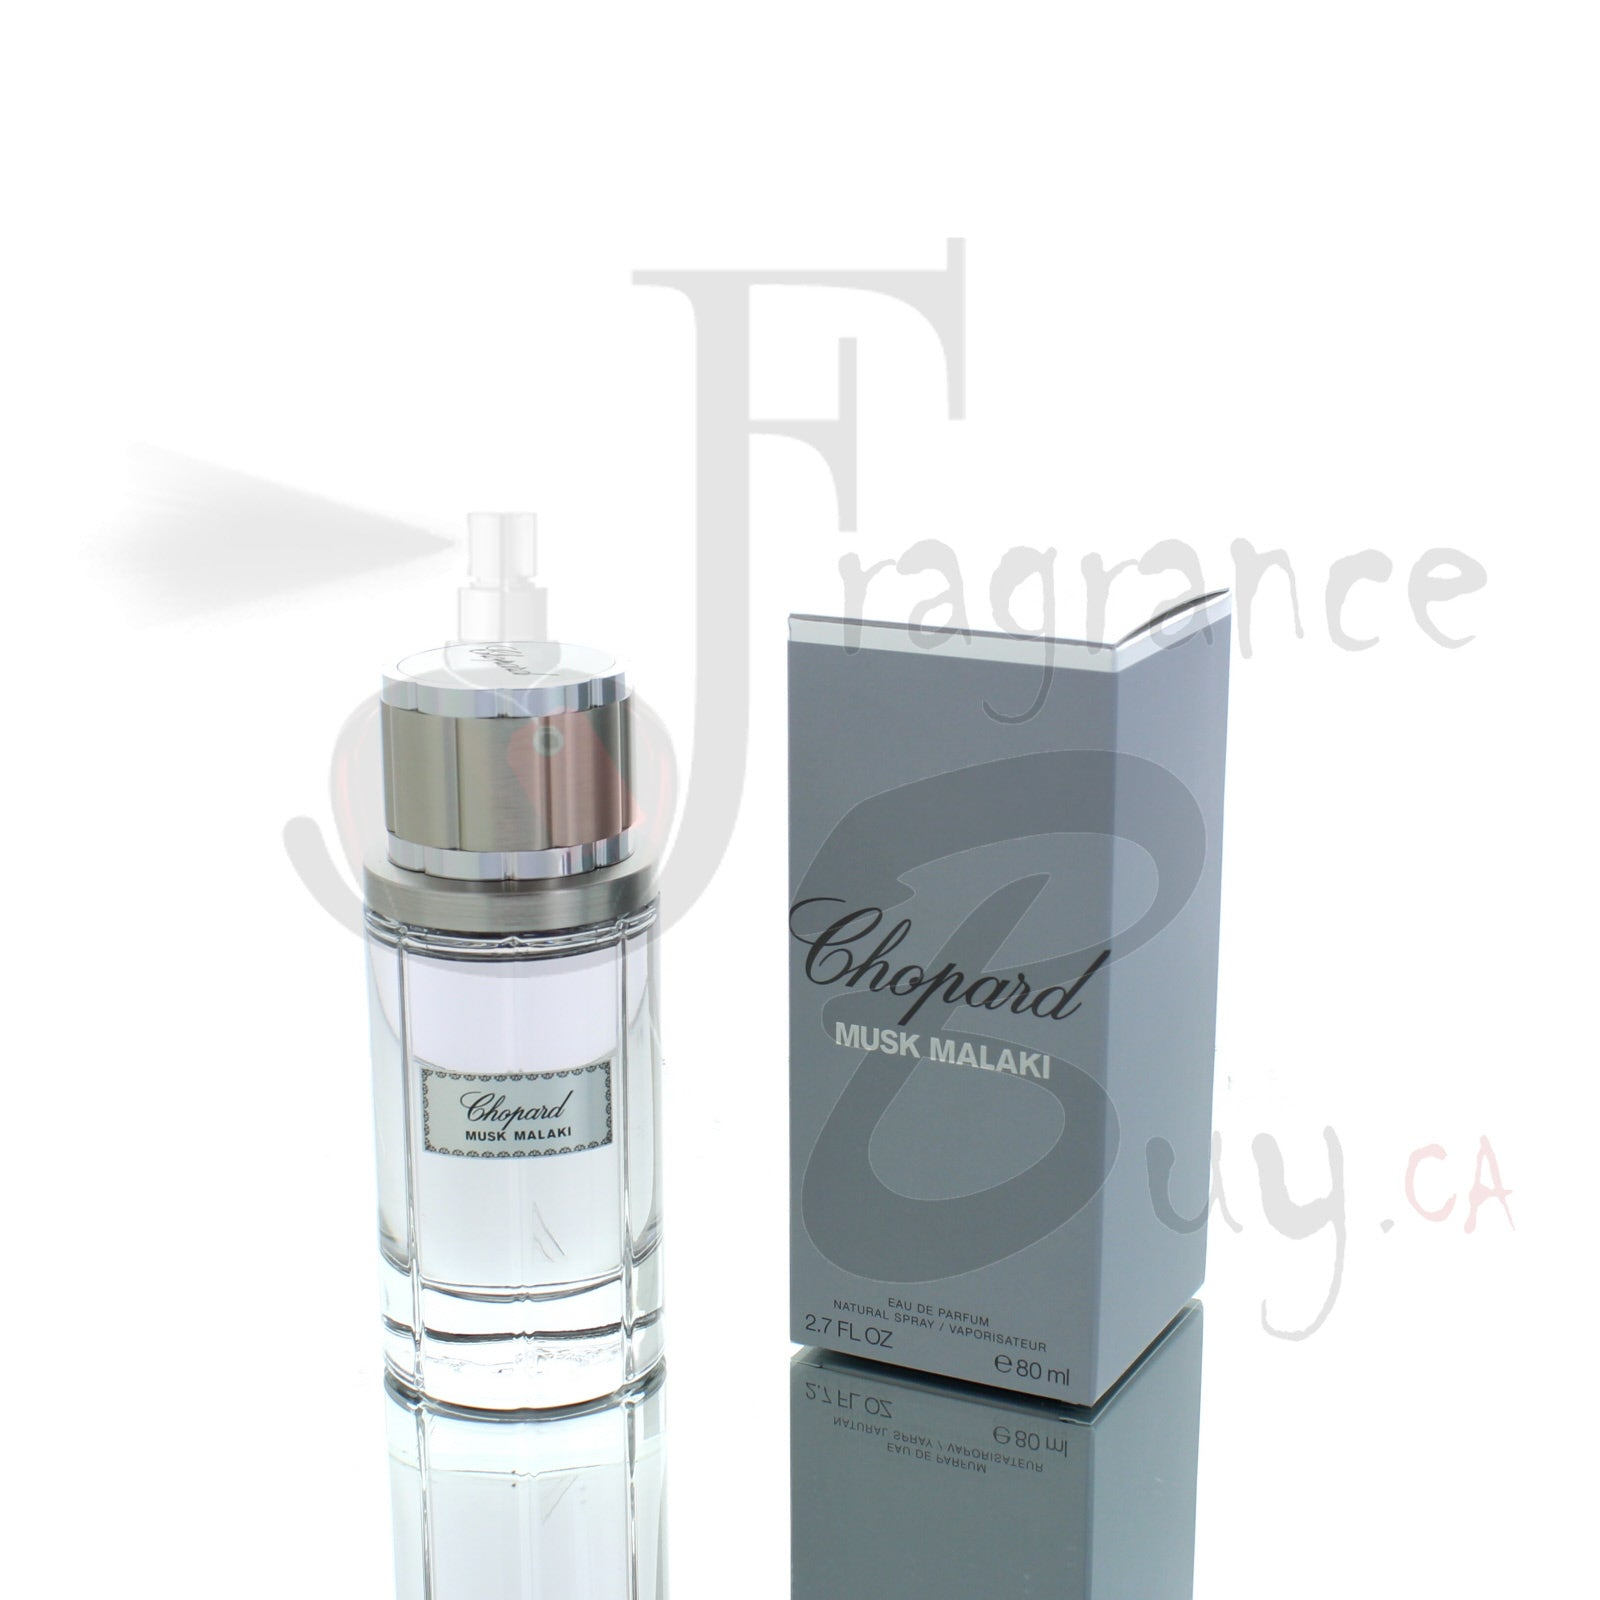 Chopard Musk Malaki For Man/Woman